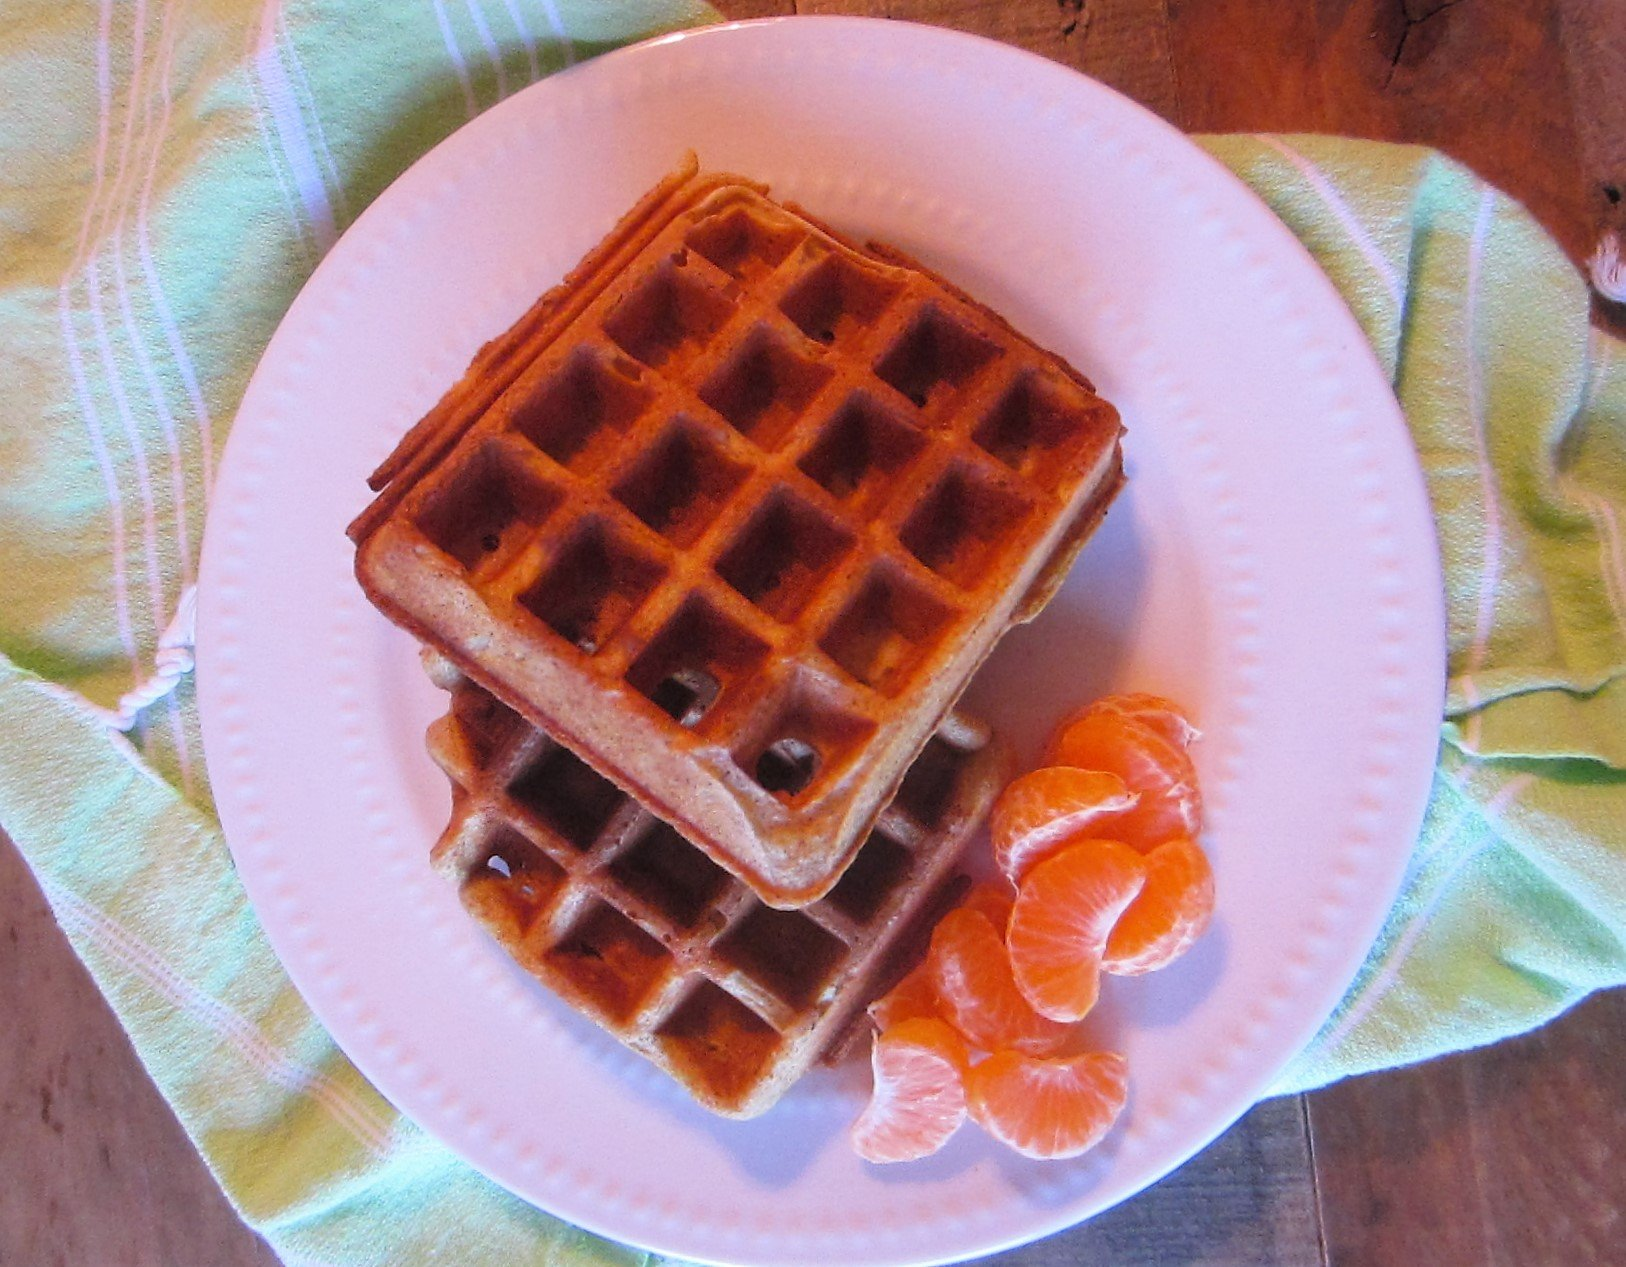 Overnight Waffles Served With Clementine Wedges